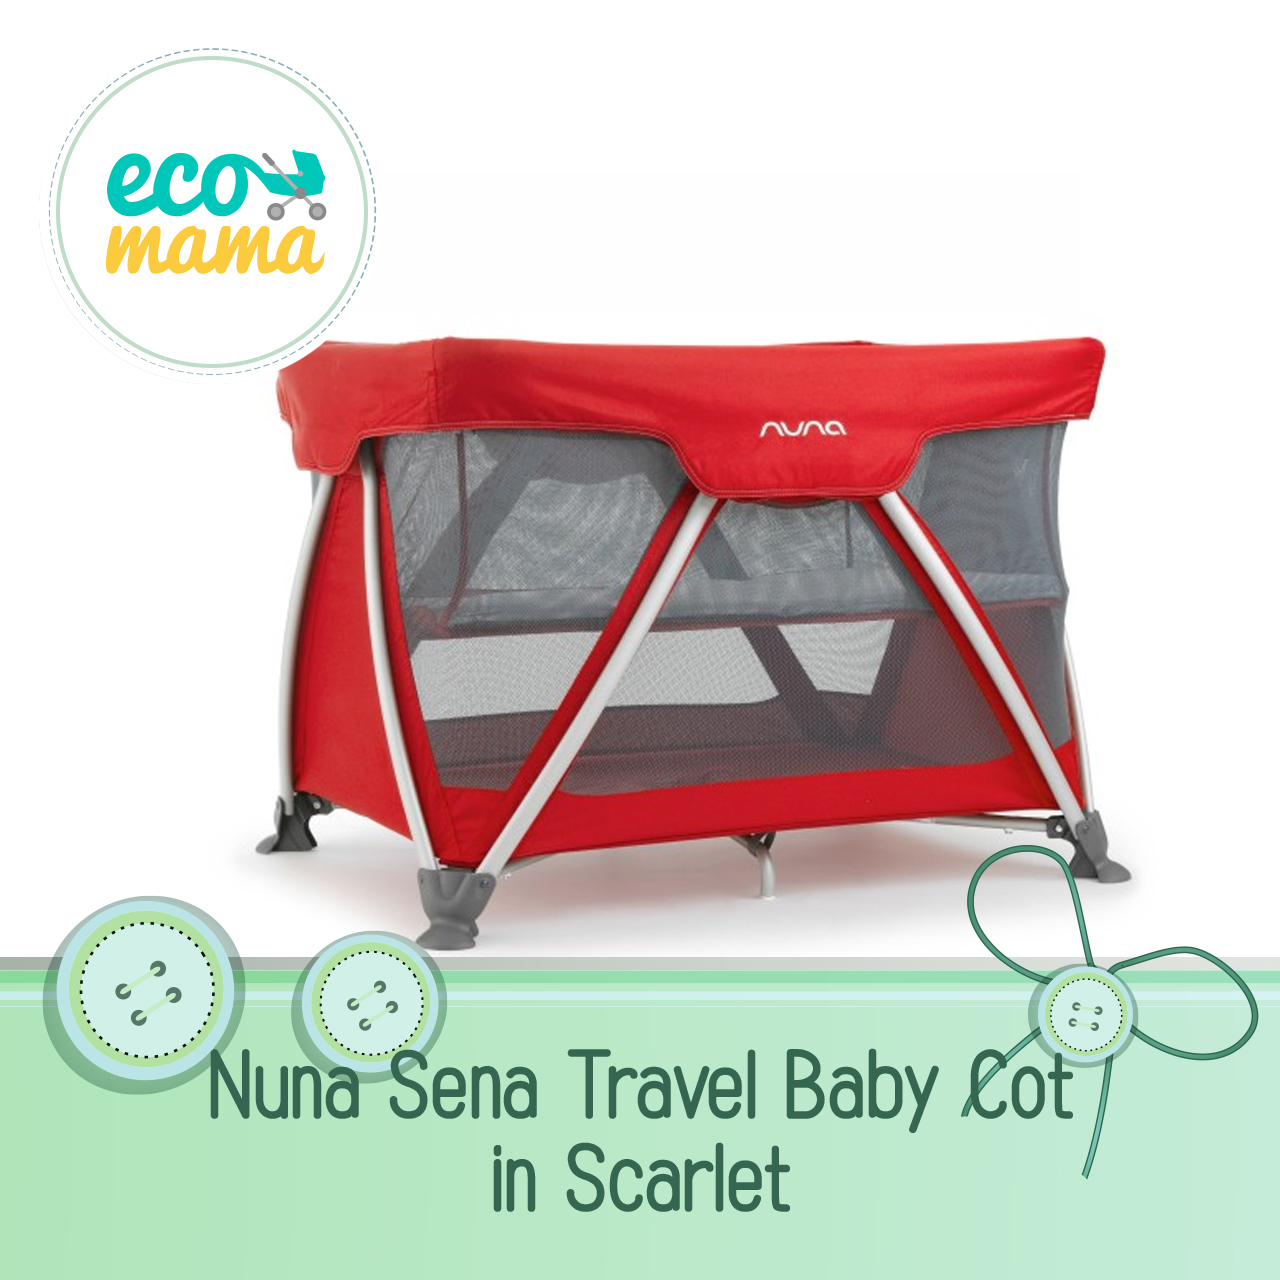 Nuna Sena Travel Crib in Scarlet